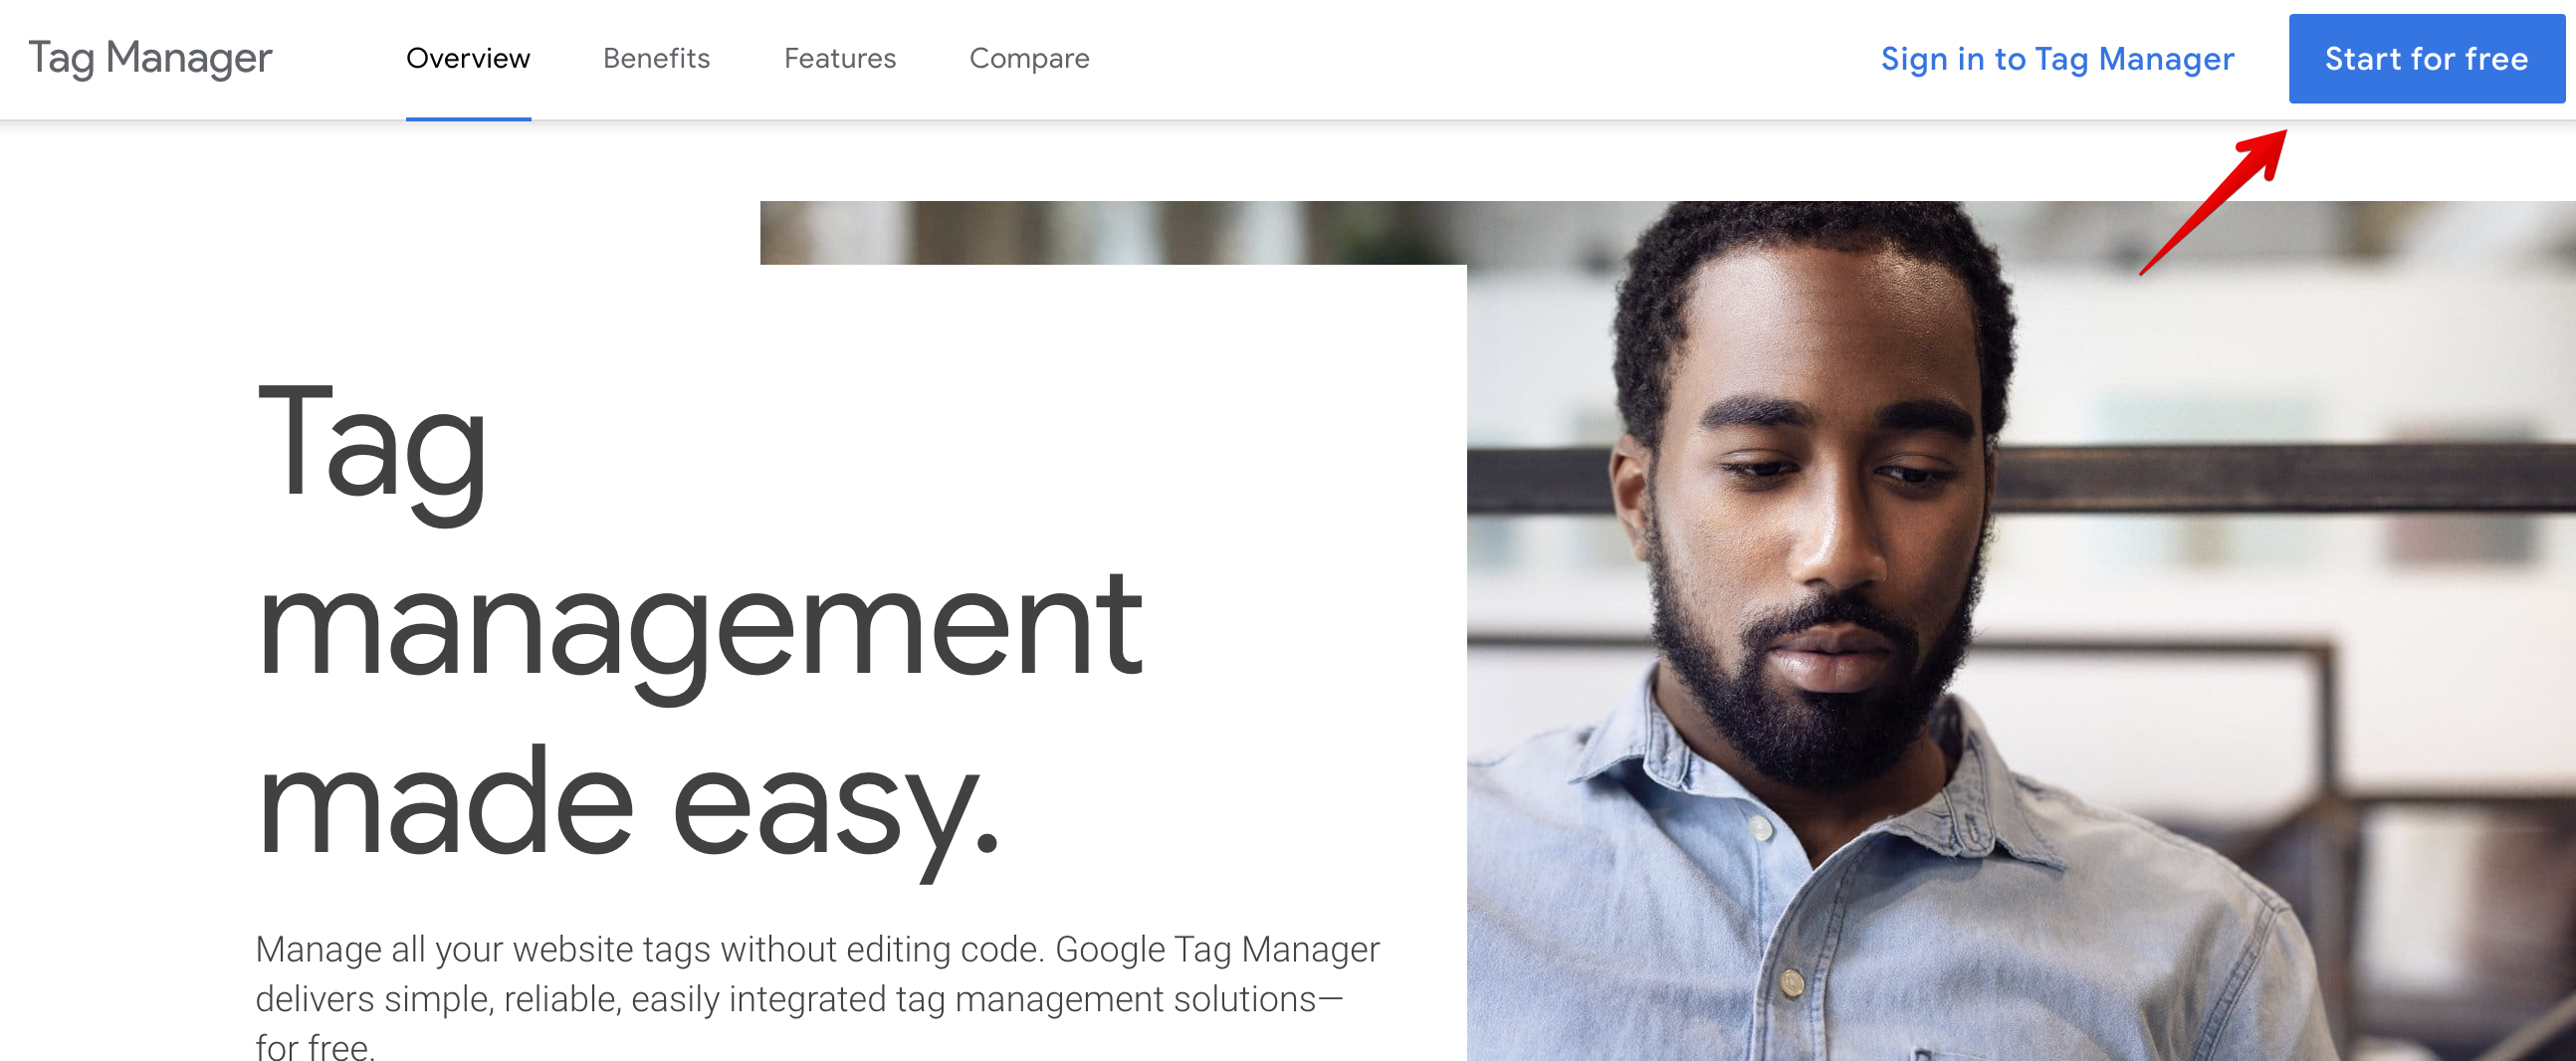 Create a Tag Manager Account